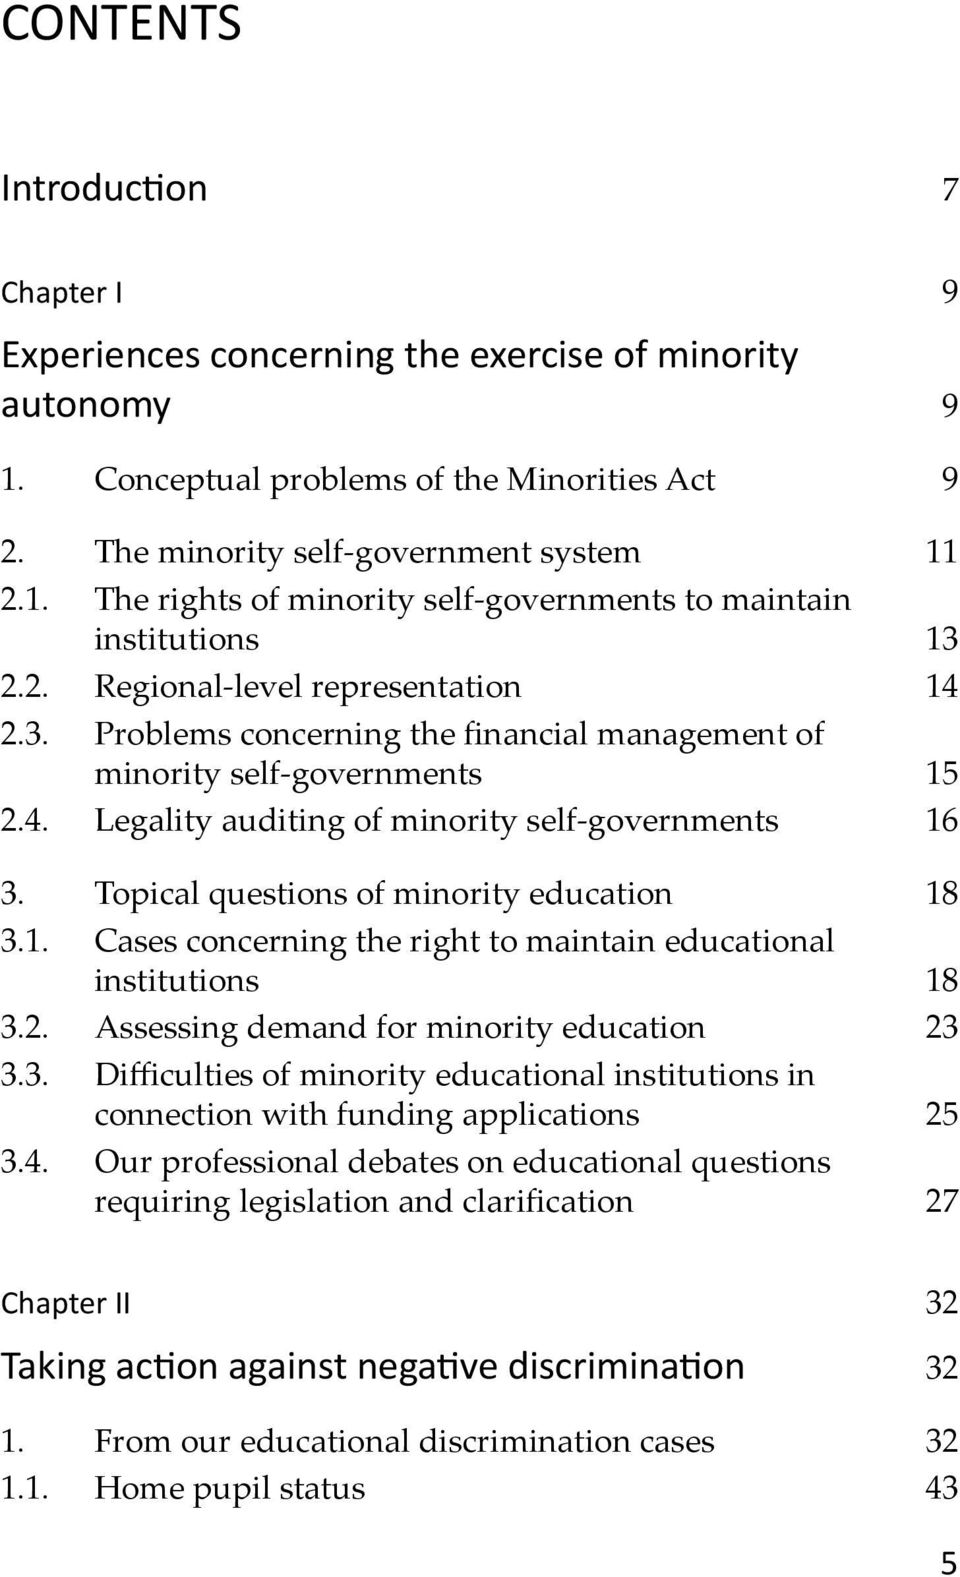 Topical questions of minority education 18 3.1. Cases concerning the right to maintain educational institutions 18 3.2. Assessing demand for minority education 23 3.3. Difficulties of minority educational institutions in connection with funding applications 25 3.